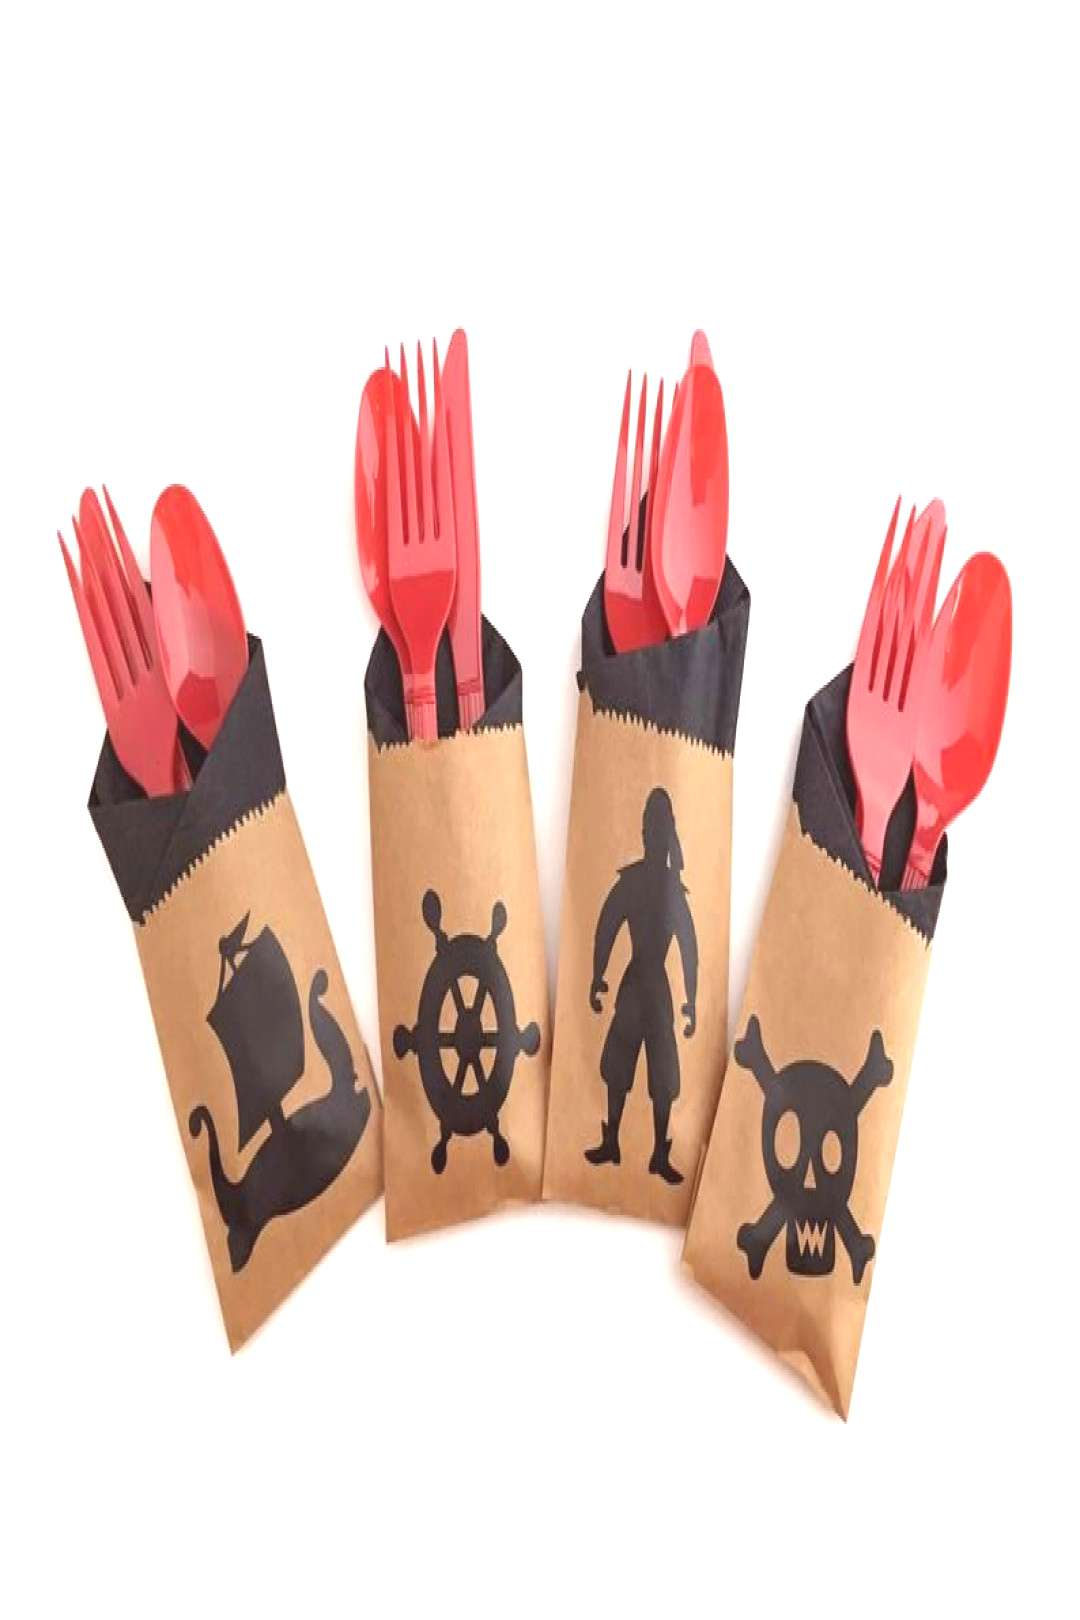 Pirate Cutlery Bags - Pirate Party Decorations, Pirate Birthday Party Supplies Ahoy Matey! Celebrat